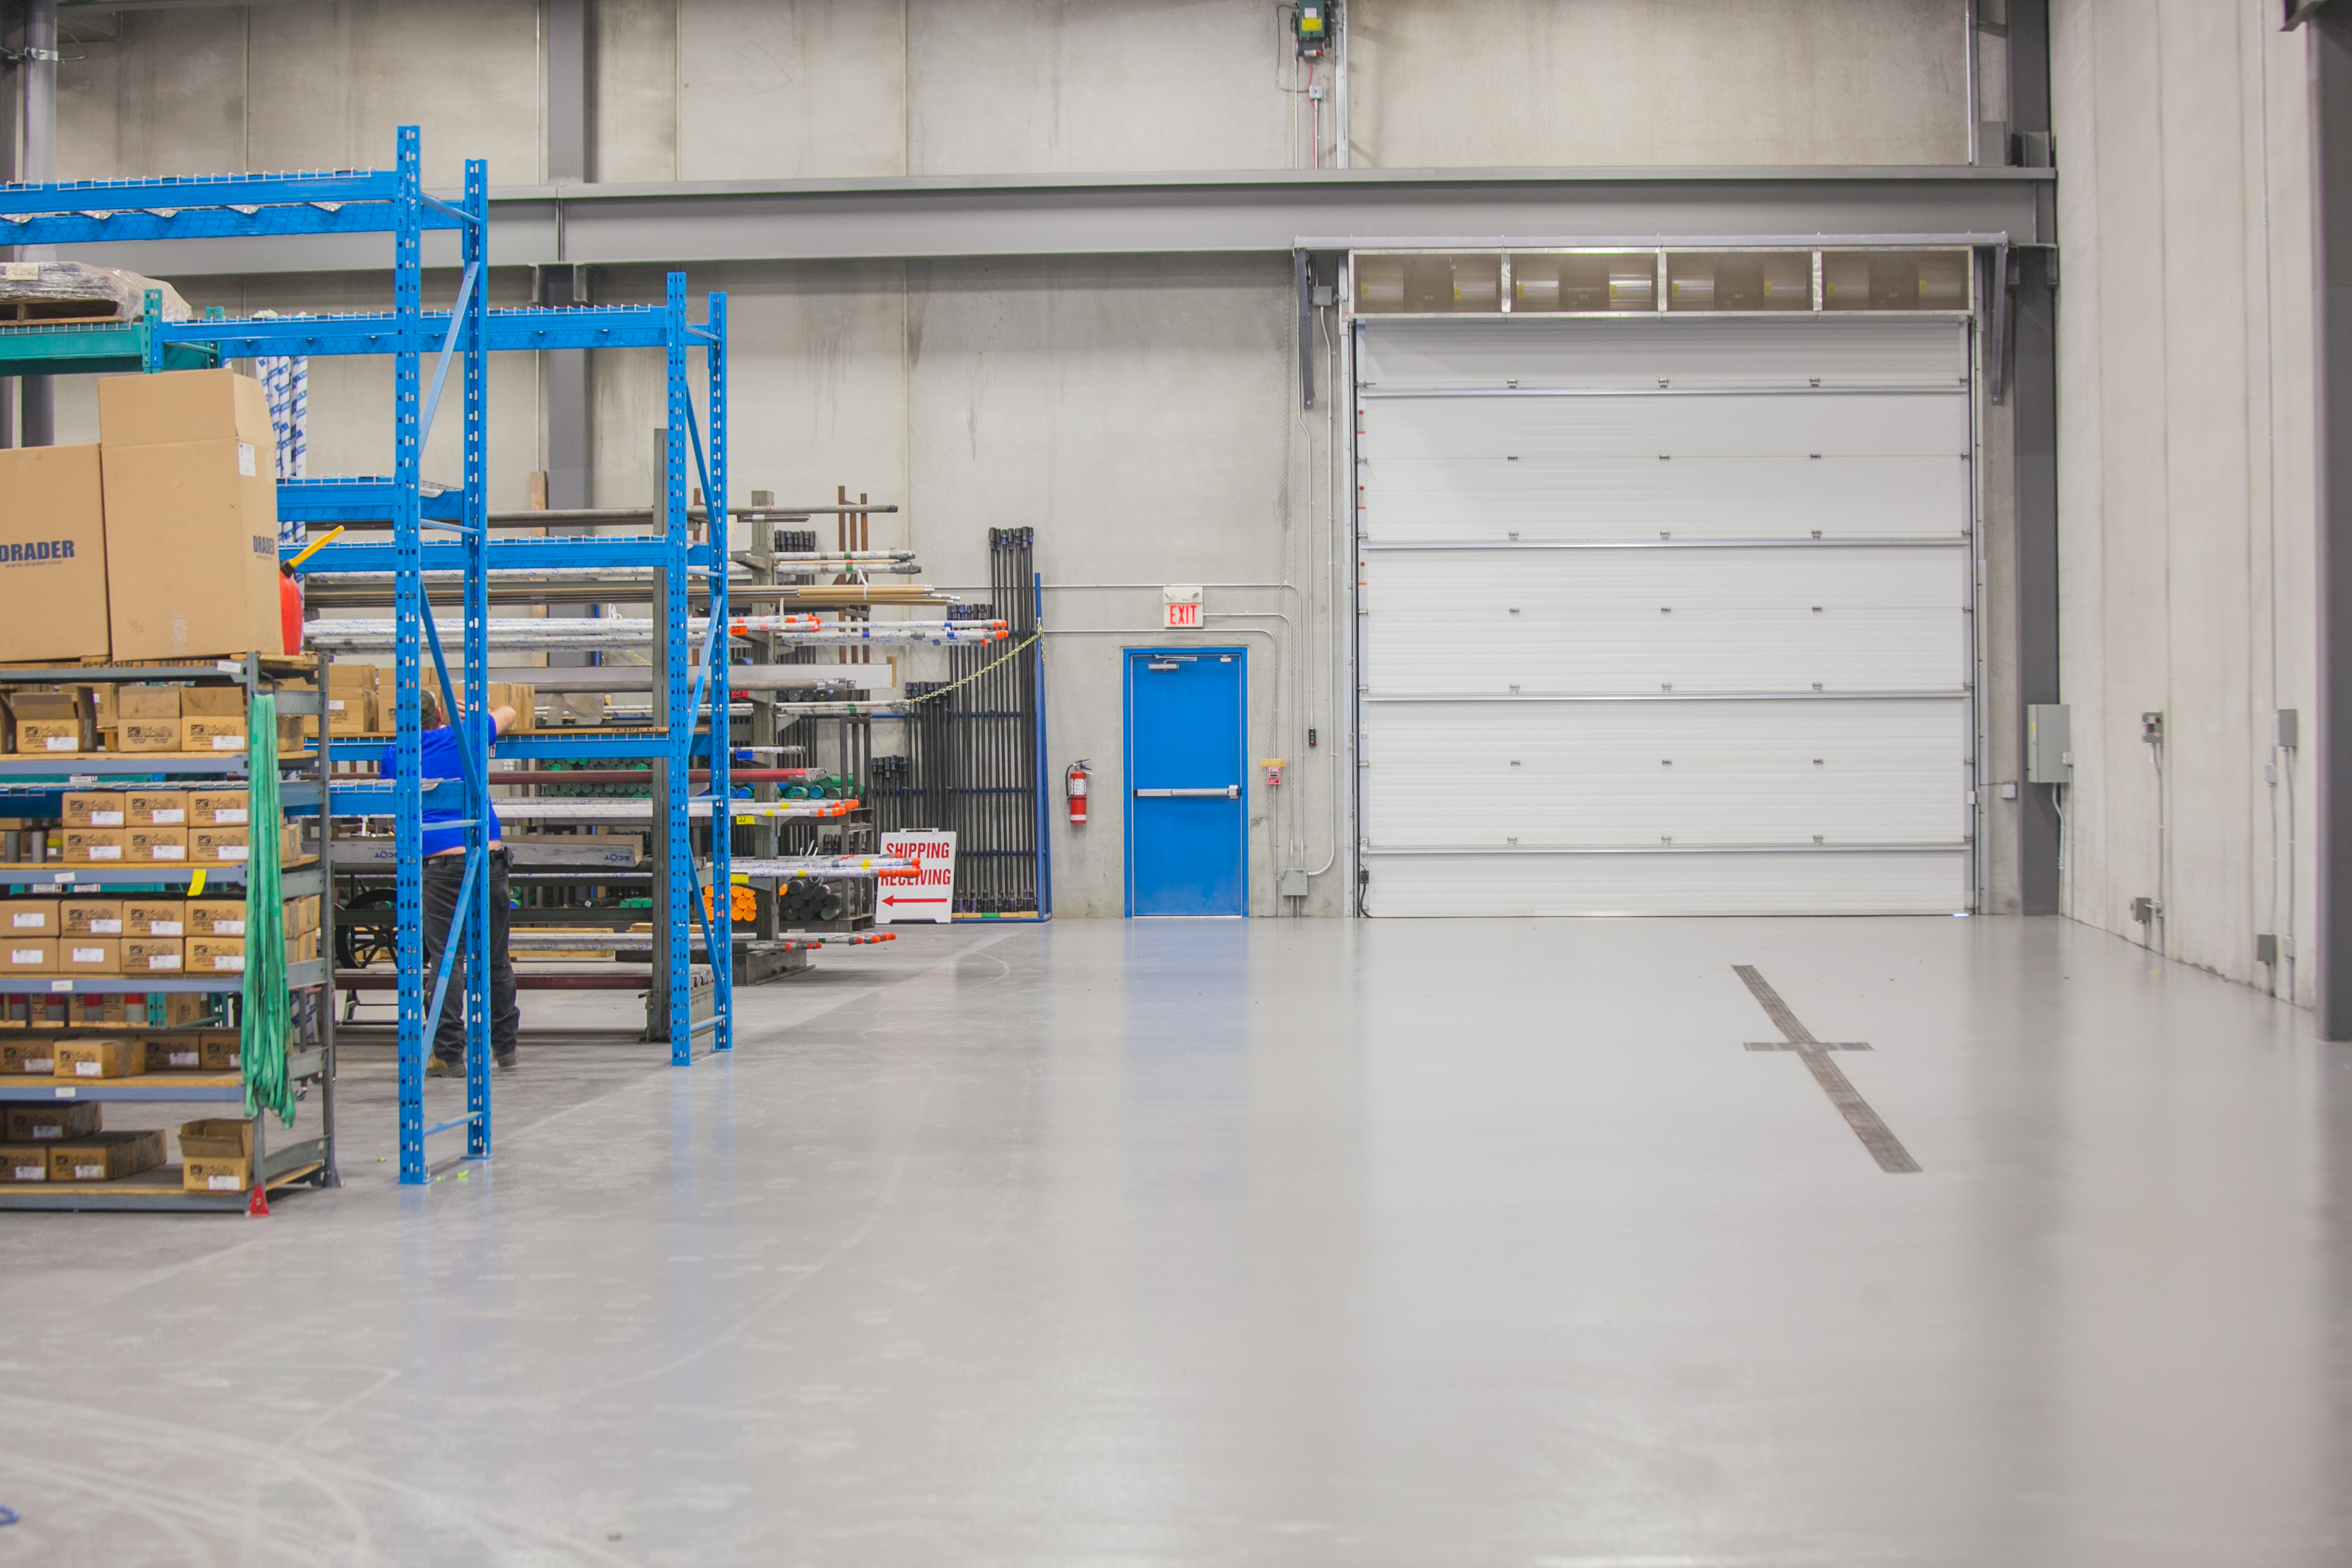 Edmonton Concrete Epoxy Floor Coatings with a High Wear Urethane Top Coat in an Industrial Oilfield Supply Company's Warehouse